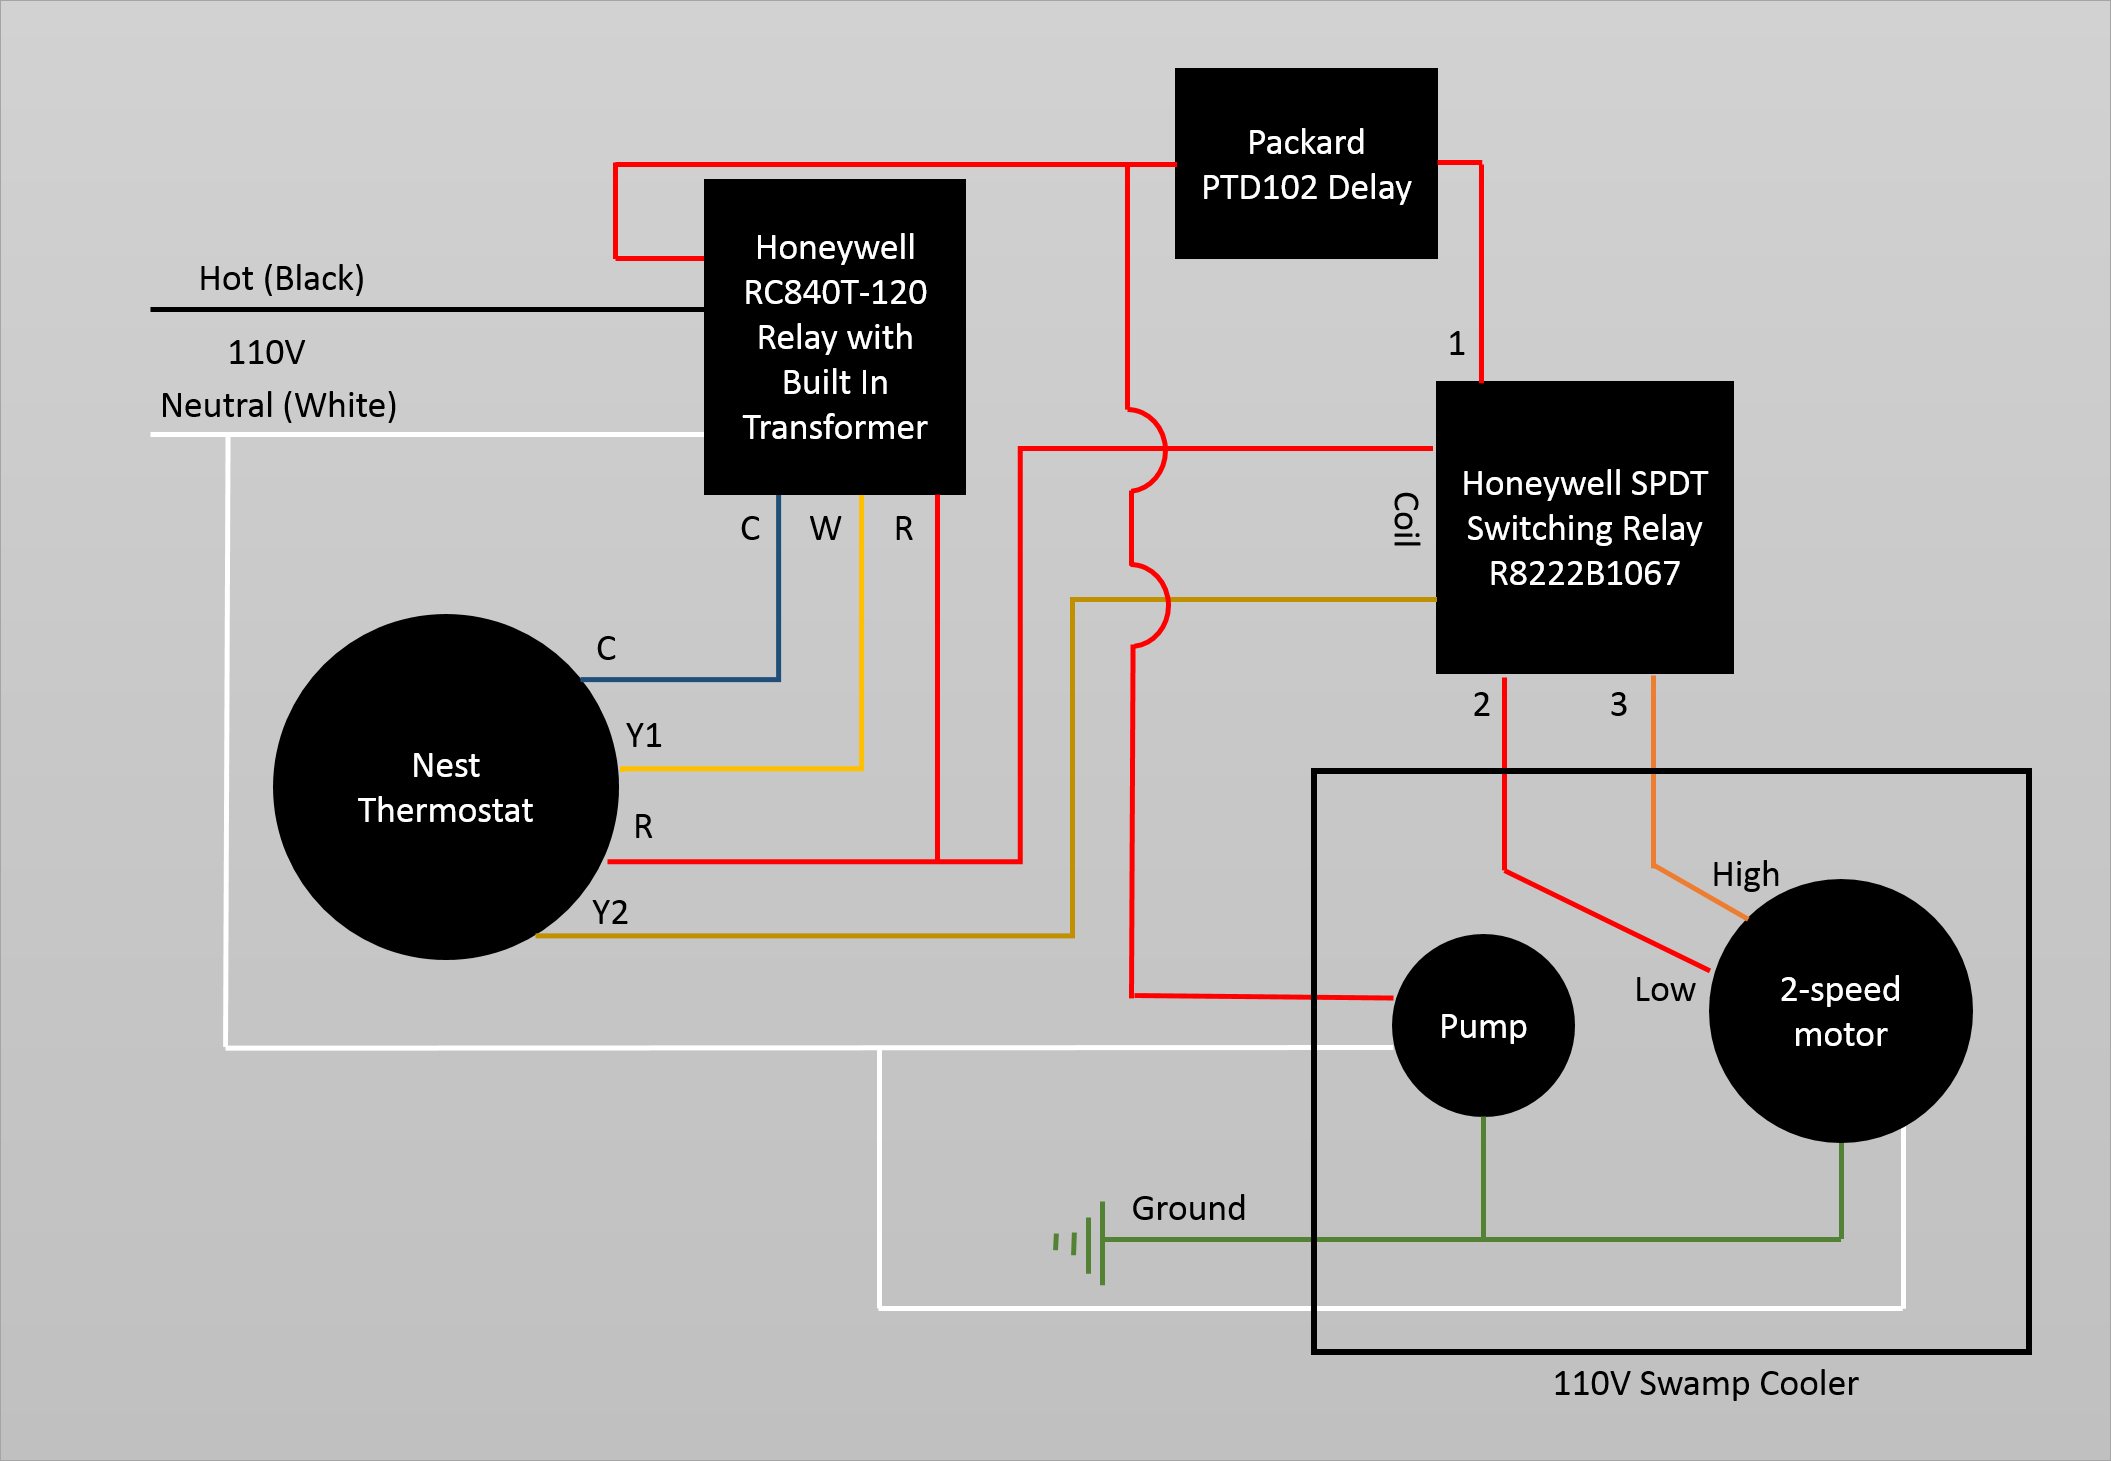 Wiring - Controlling 110V Swamp Cooler Using Nest Thermostat - Home - Nest Wiring Diagram Single Wire